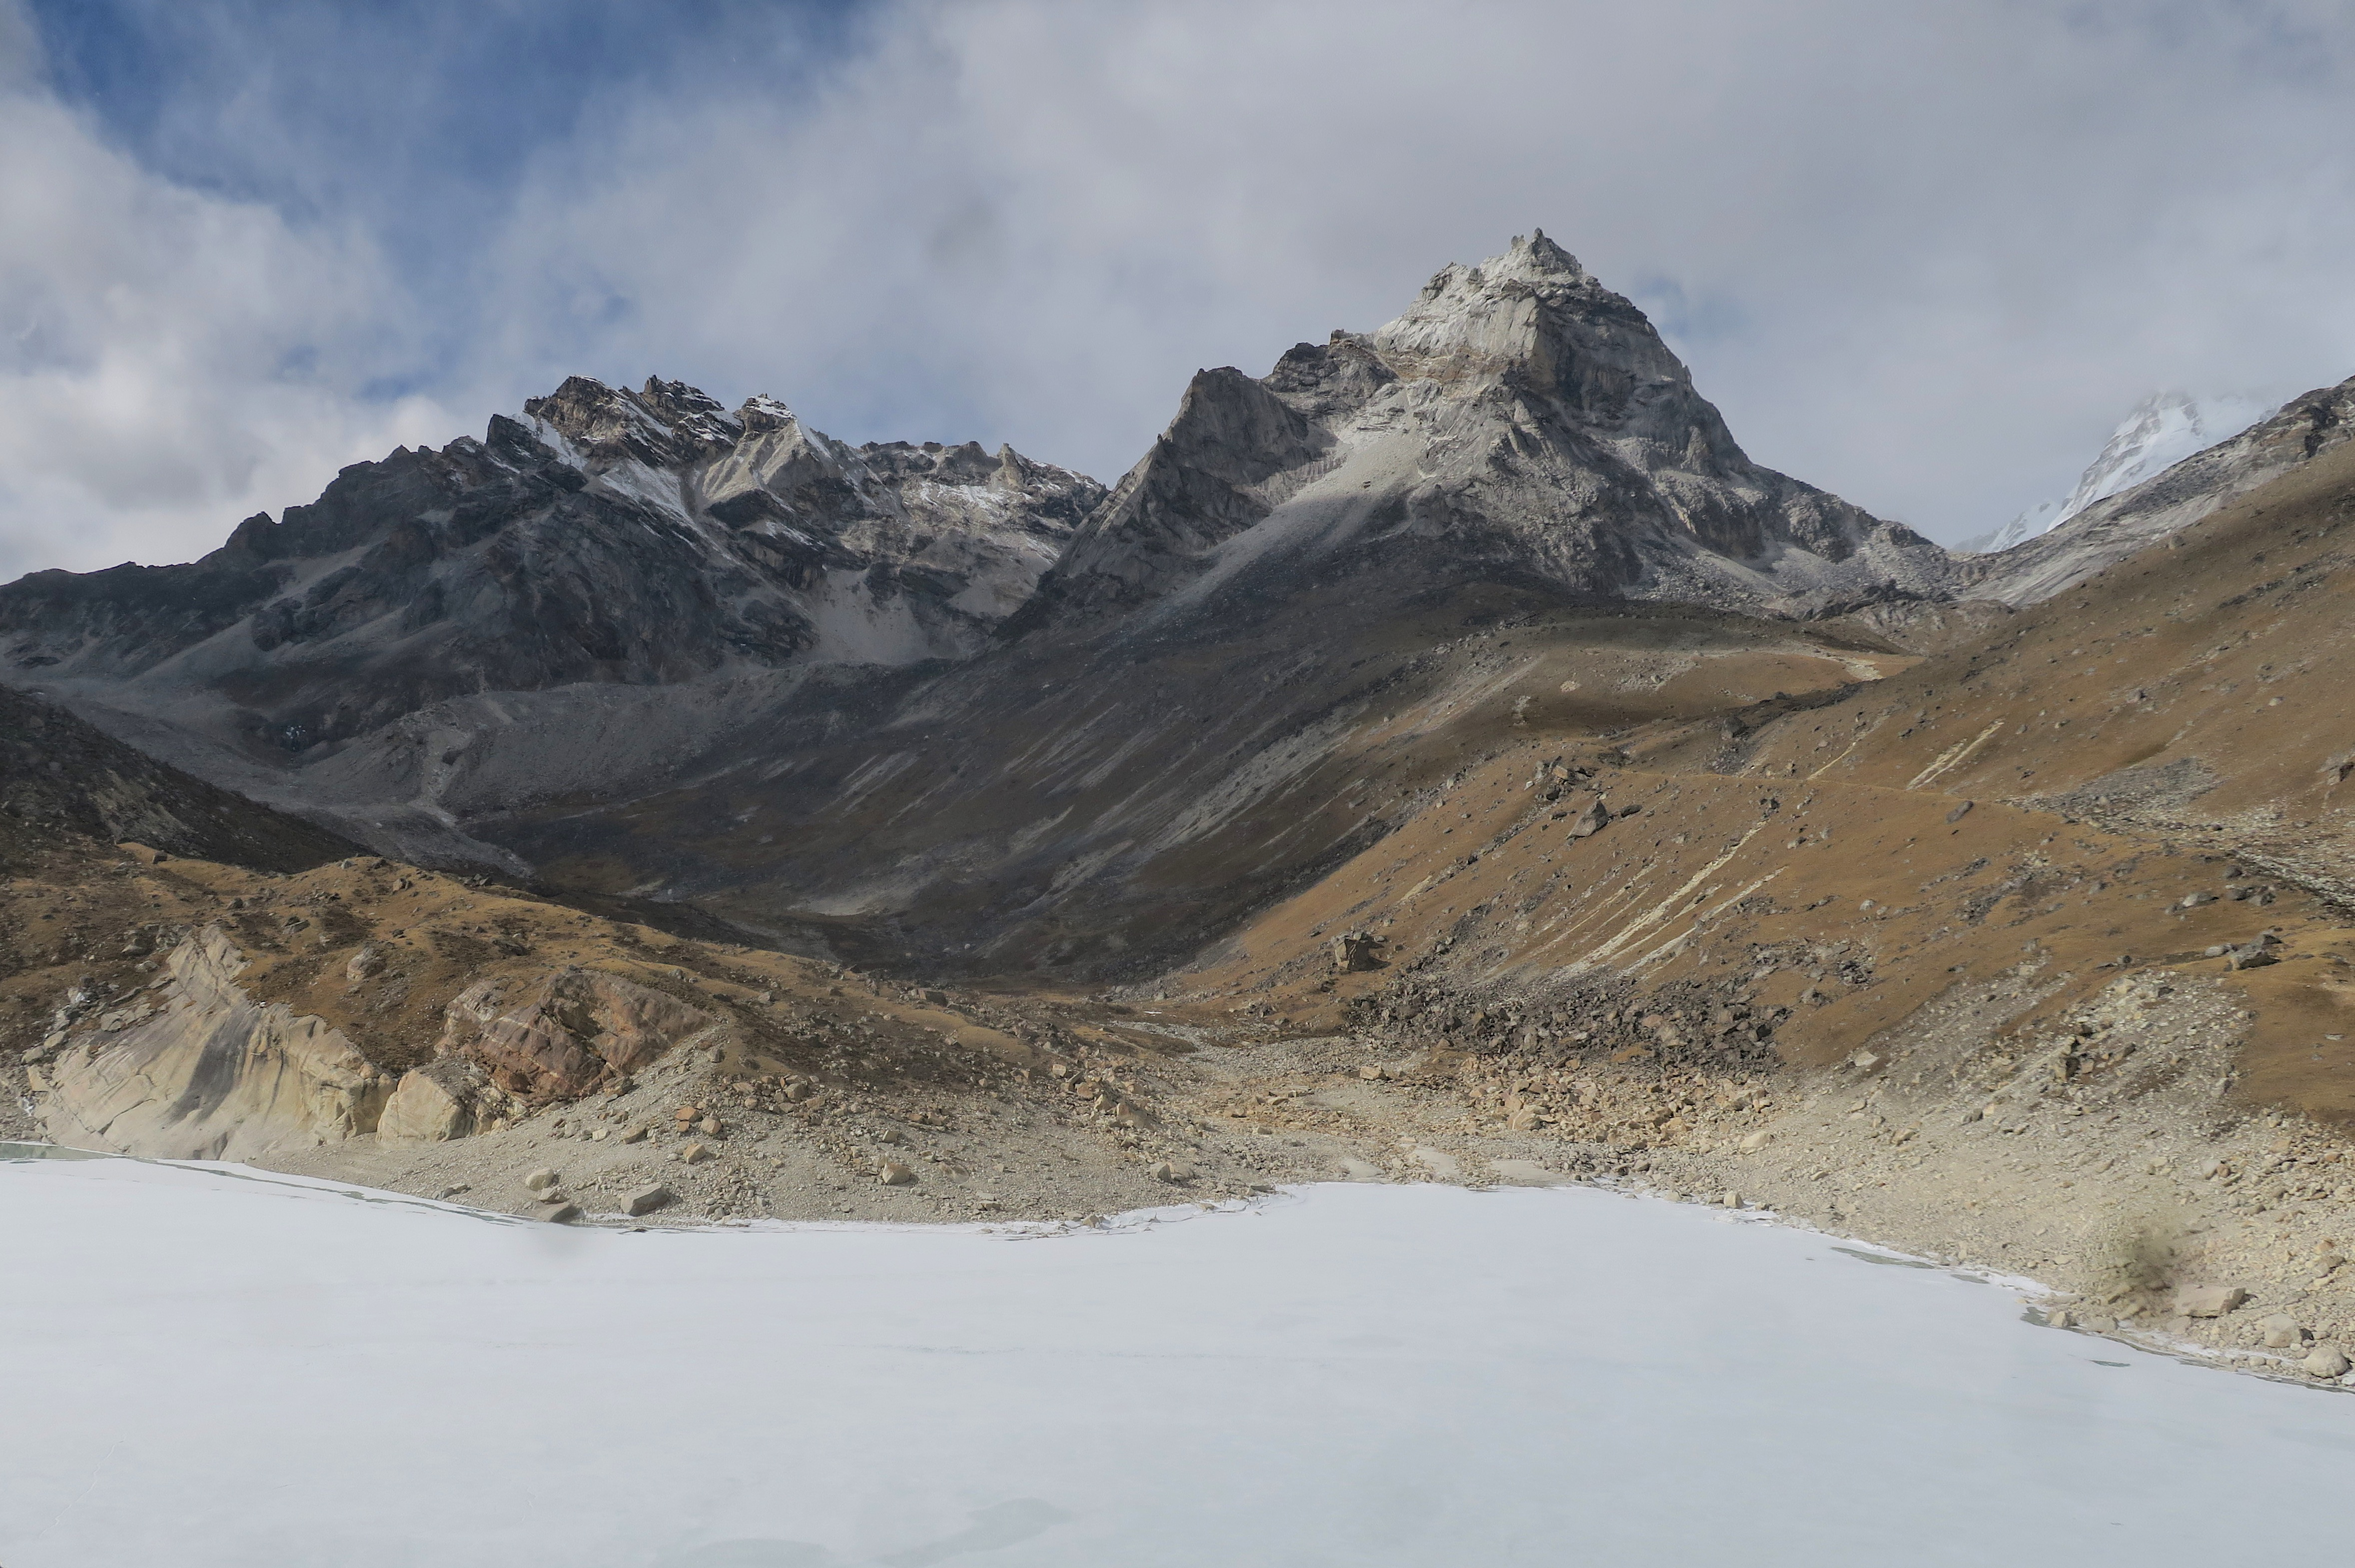 A nice break in the snow, for a glimpse at one of the Gokyo lakes.